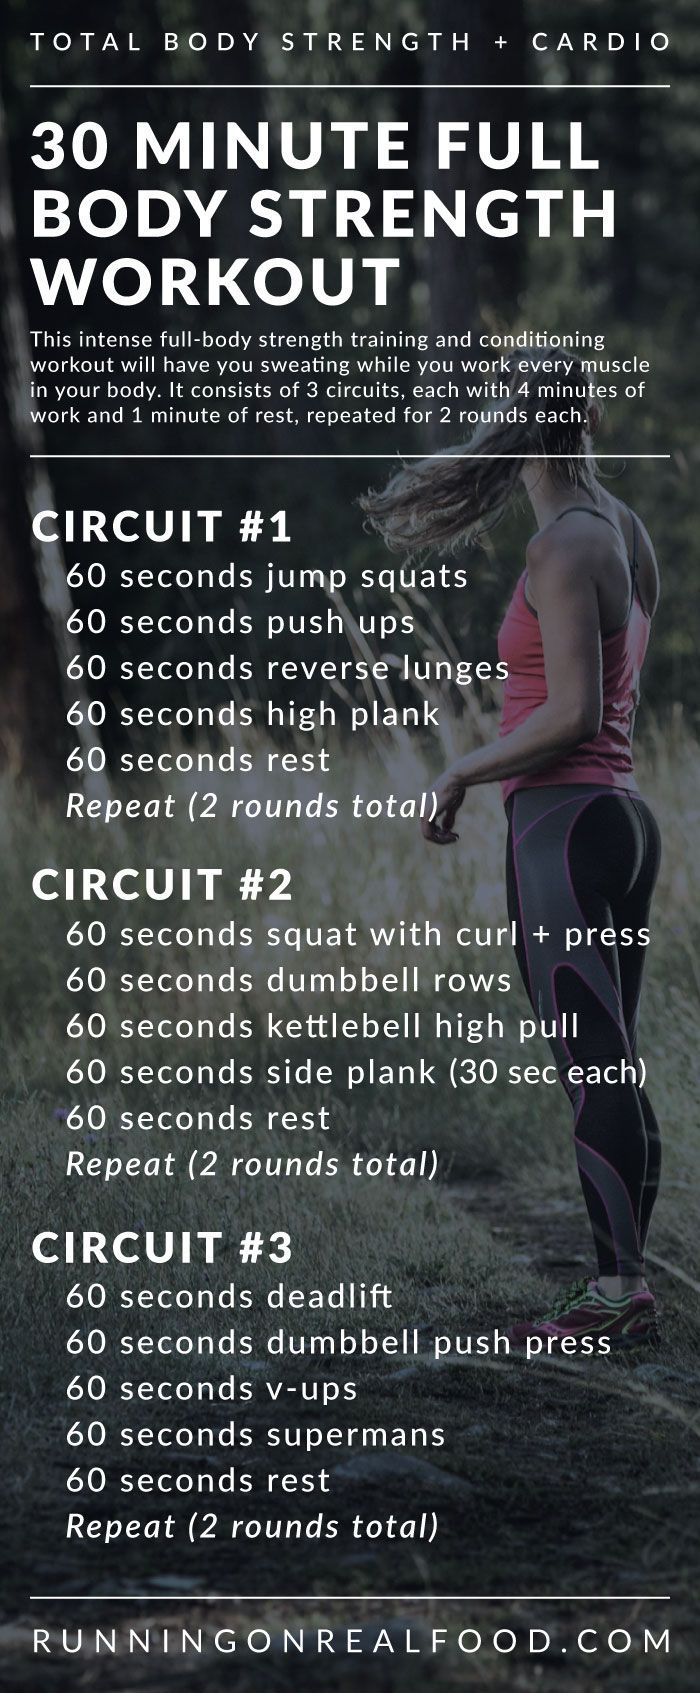 25 best ideas about full body workouts on pinterest full body workout plan total body. Black Bedroom Furniture Sets. Home Design Ideas